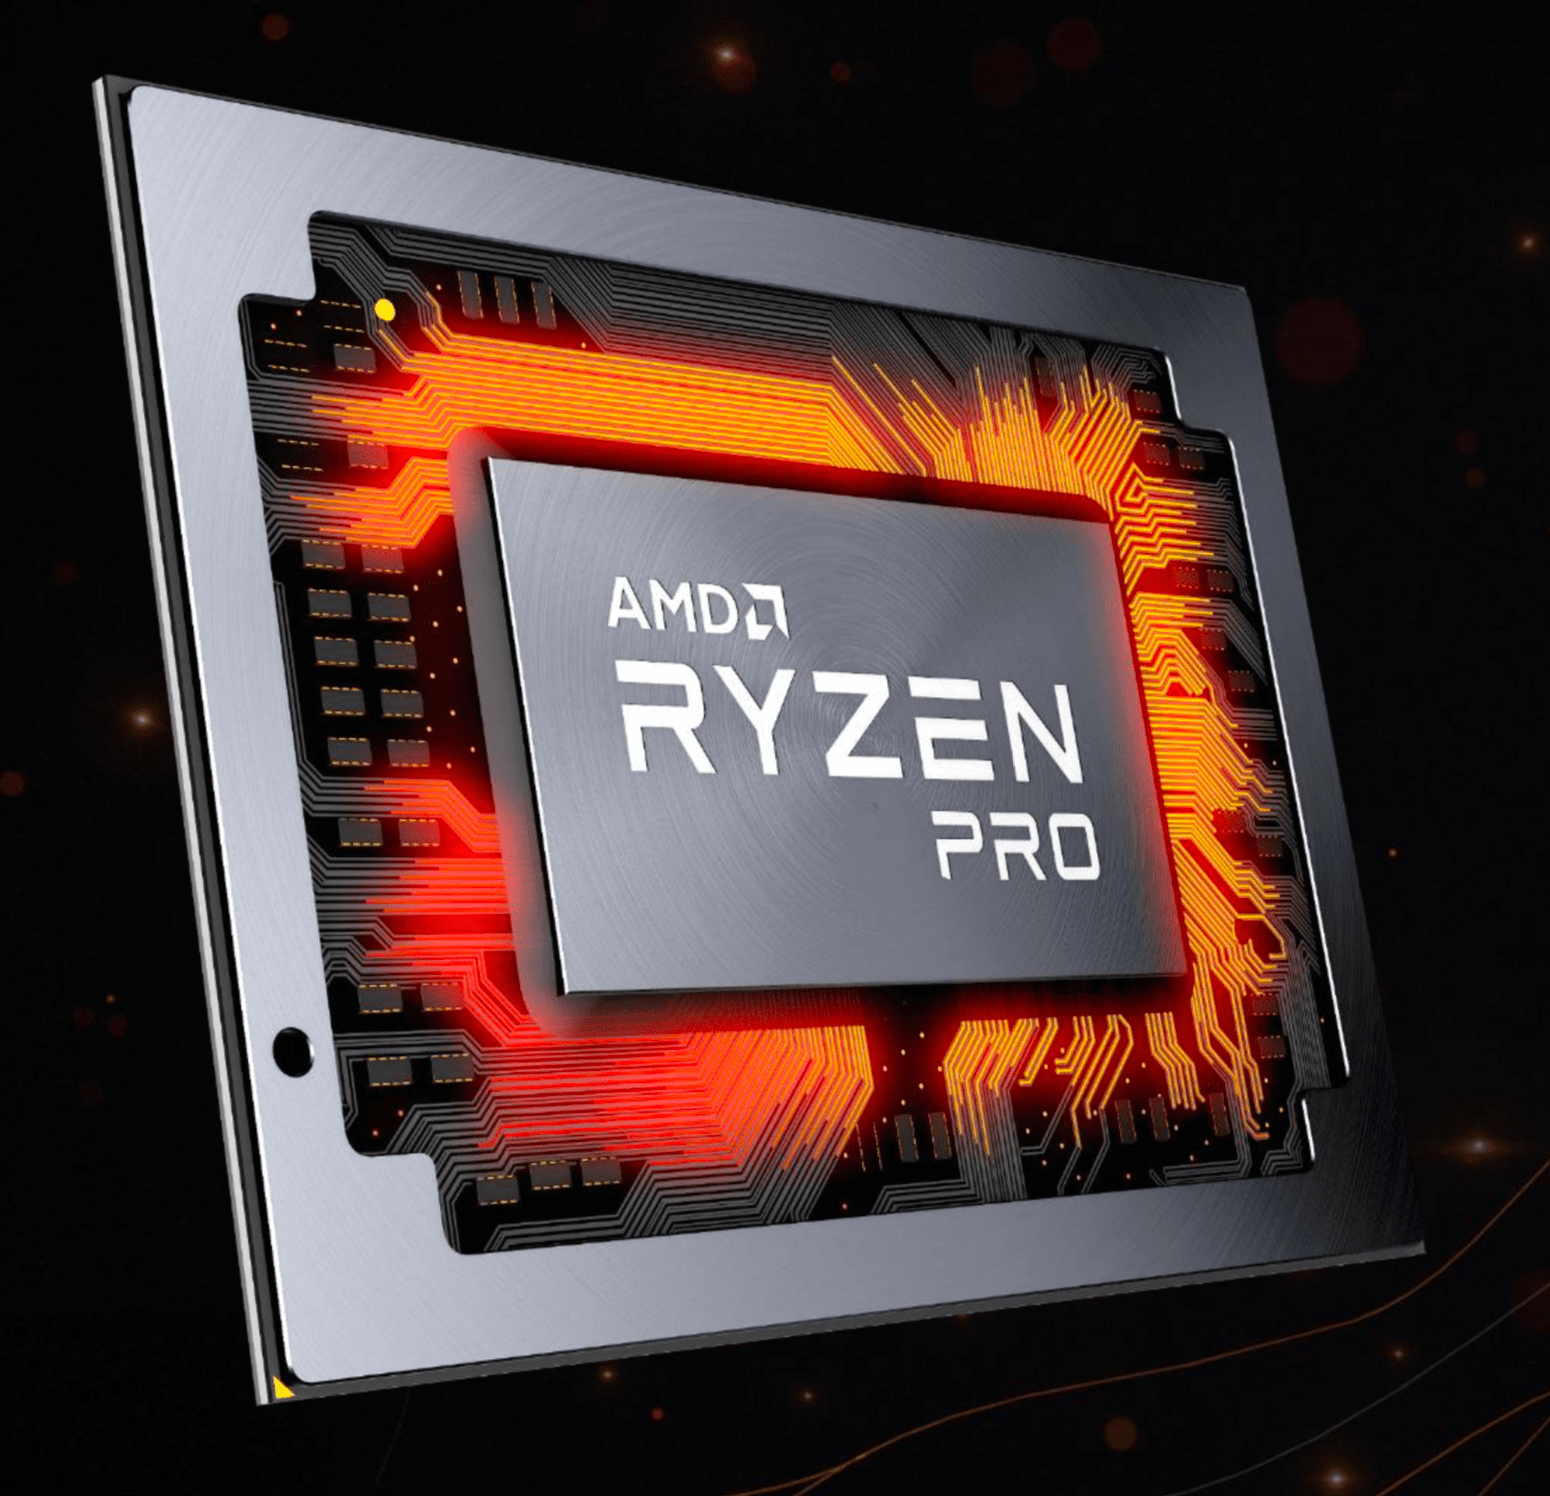 Ryzen PRO Mobile Brings Ryzen To Business Laptops